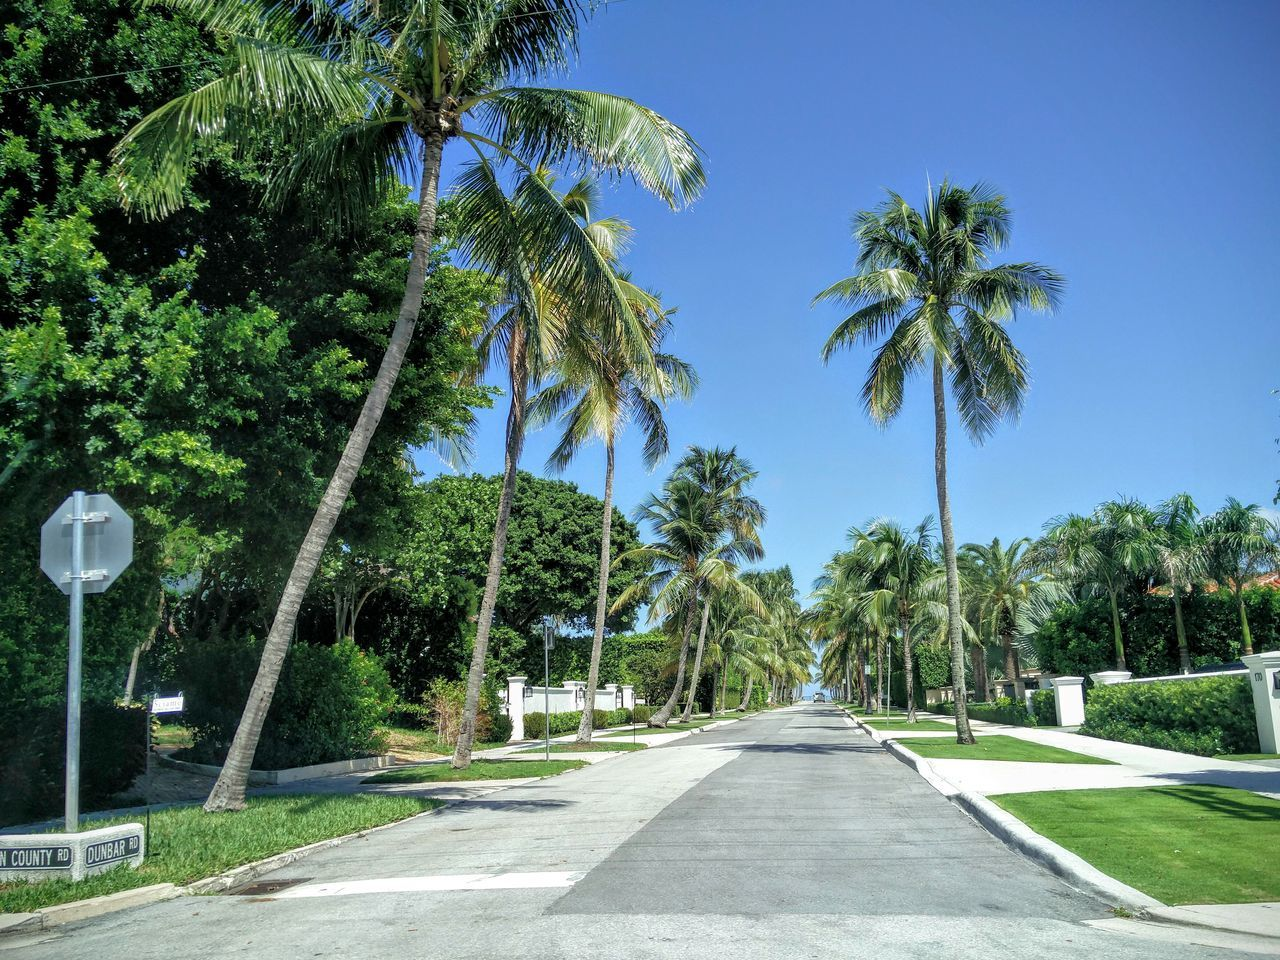 Clear Sky Palm Tree The Way Forward Tree Tranquil Scene Green Color Outdoors Nature Summer Sunny Day Footpath Florida Life Florida Street Photography Road To Sea Ocean Road Drive Tranquility Blue Travel Destinations Tourism